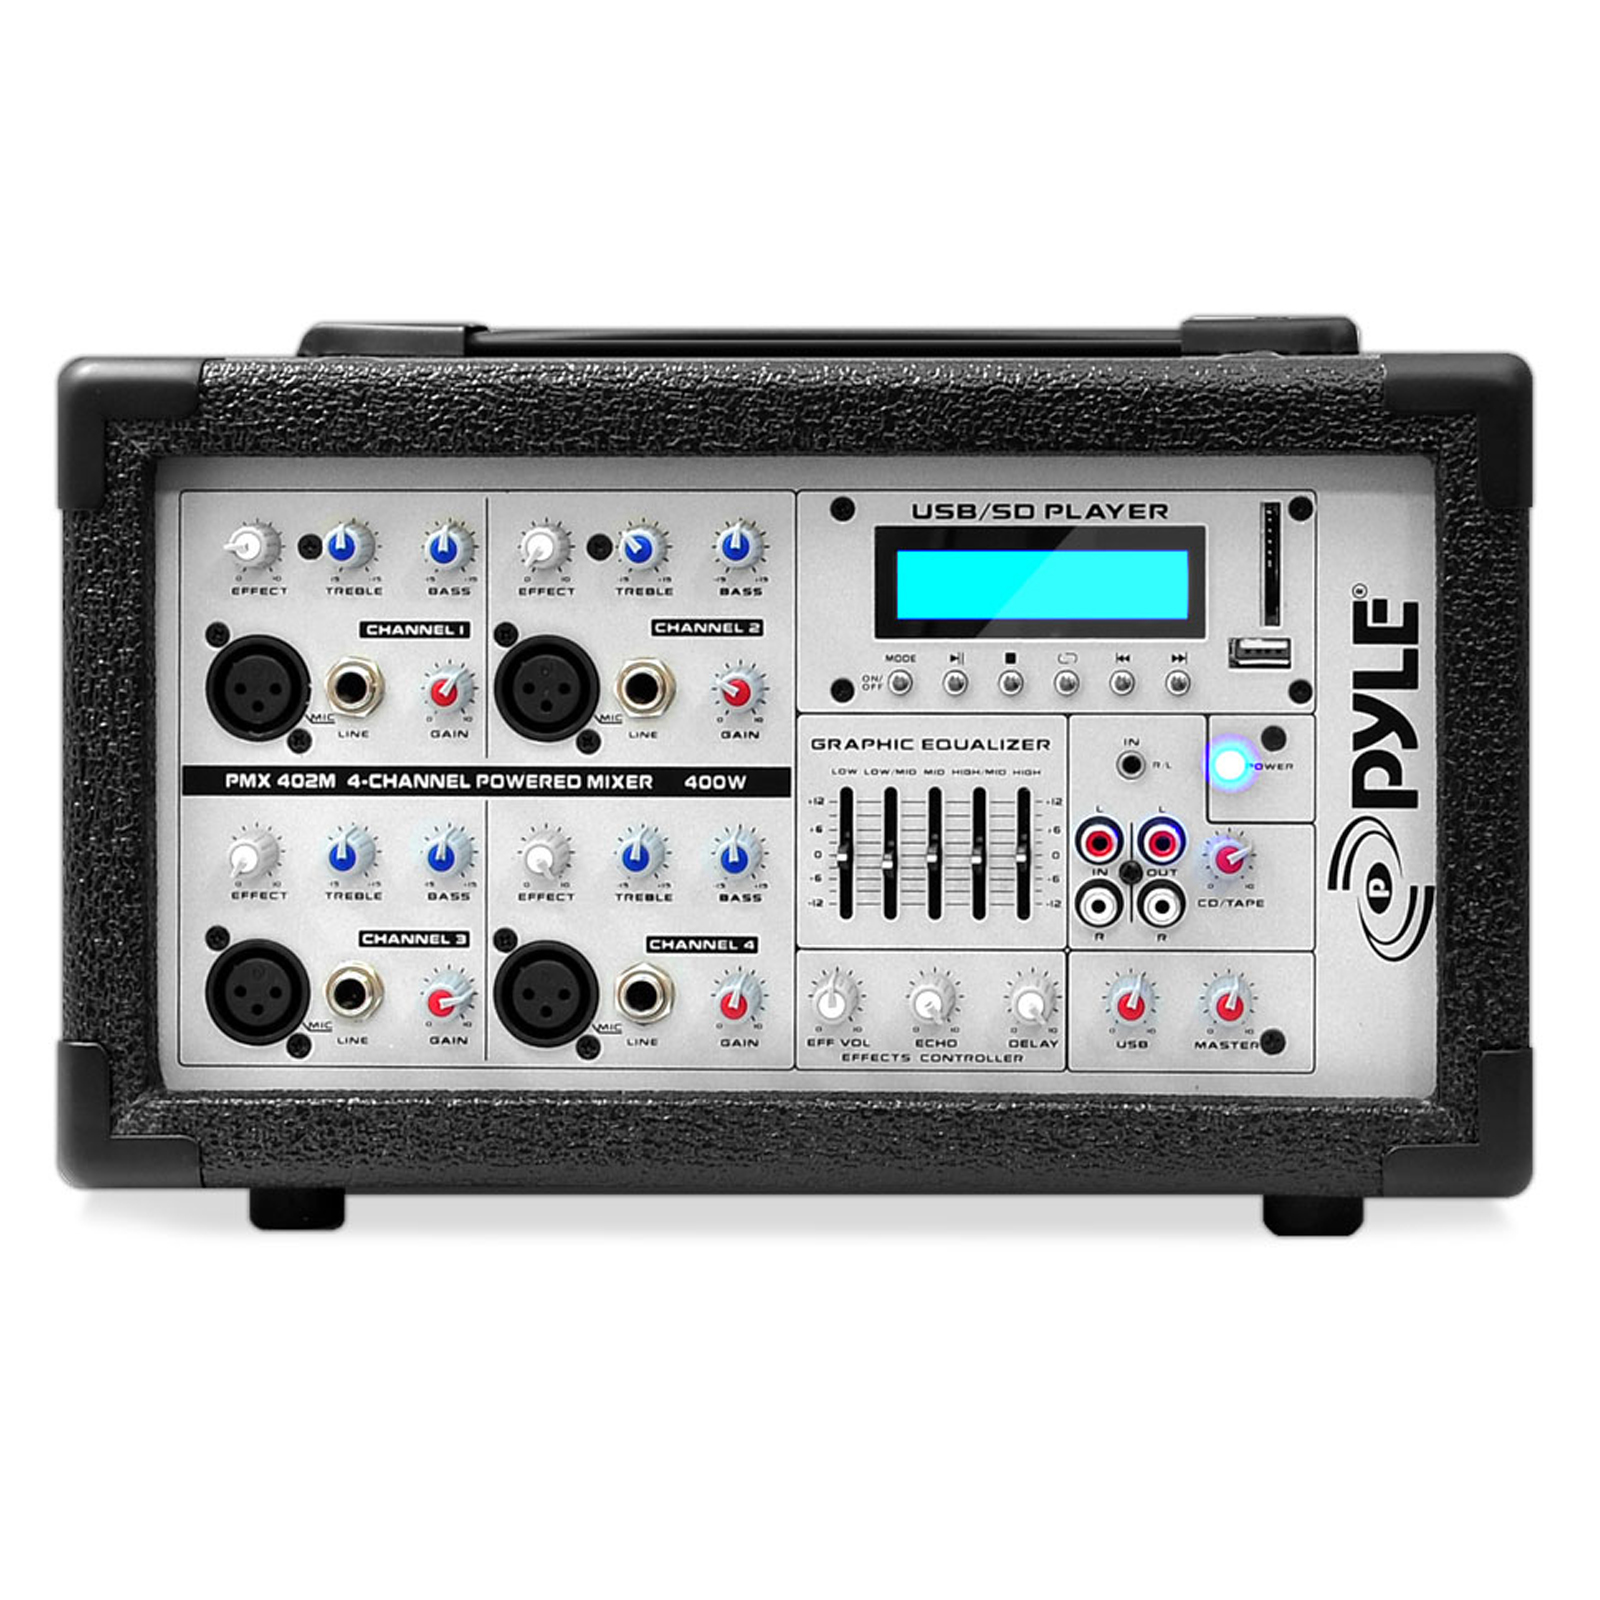 pyle pro pmx402m 400 watt 4 channel powered mixer with mp3 usb input. Black Bedroom Furniture Sets. Home Design Ideas